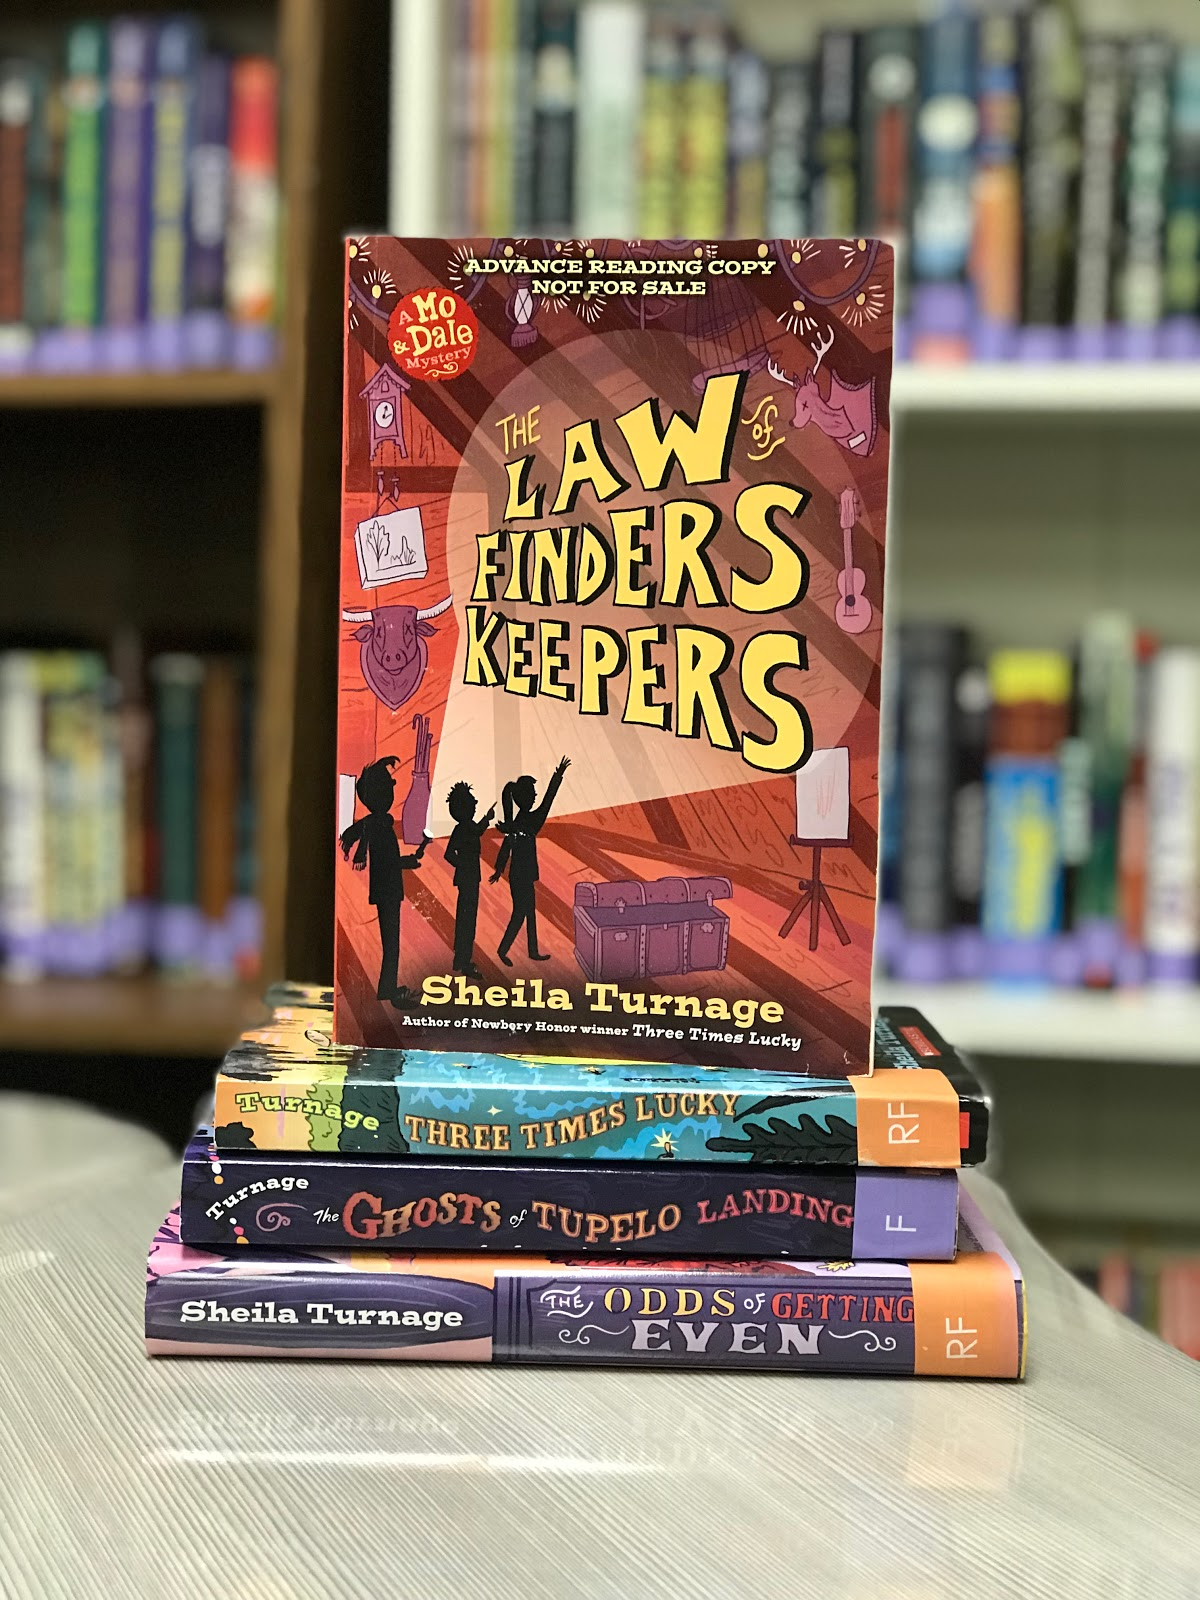 Mo dale series the laws of finders keepers teachers who read in case you havent had a chance to read any of these wonderful books in the series here is the goodreads synopsis for the law of finders keepers fandeluxe Images